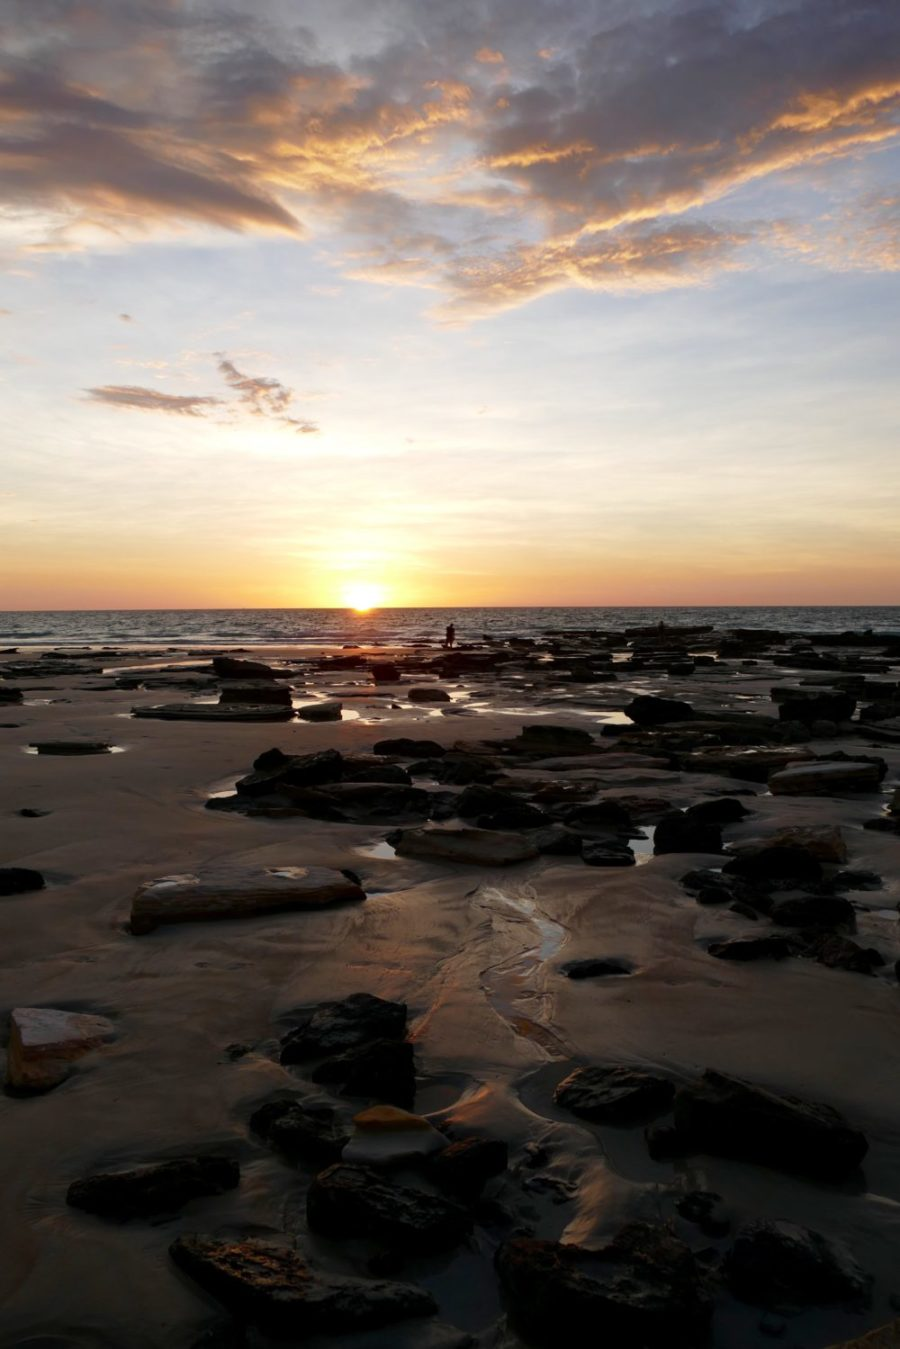 Sunset, low tide, Cable Beach, Broome. All photos copyright Doug Spencer.